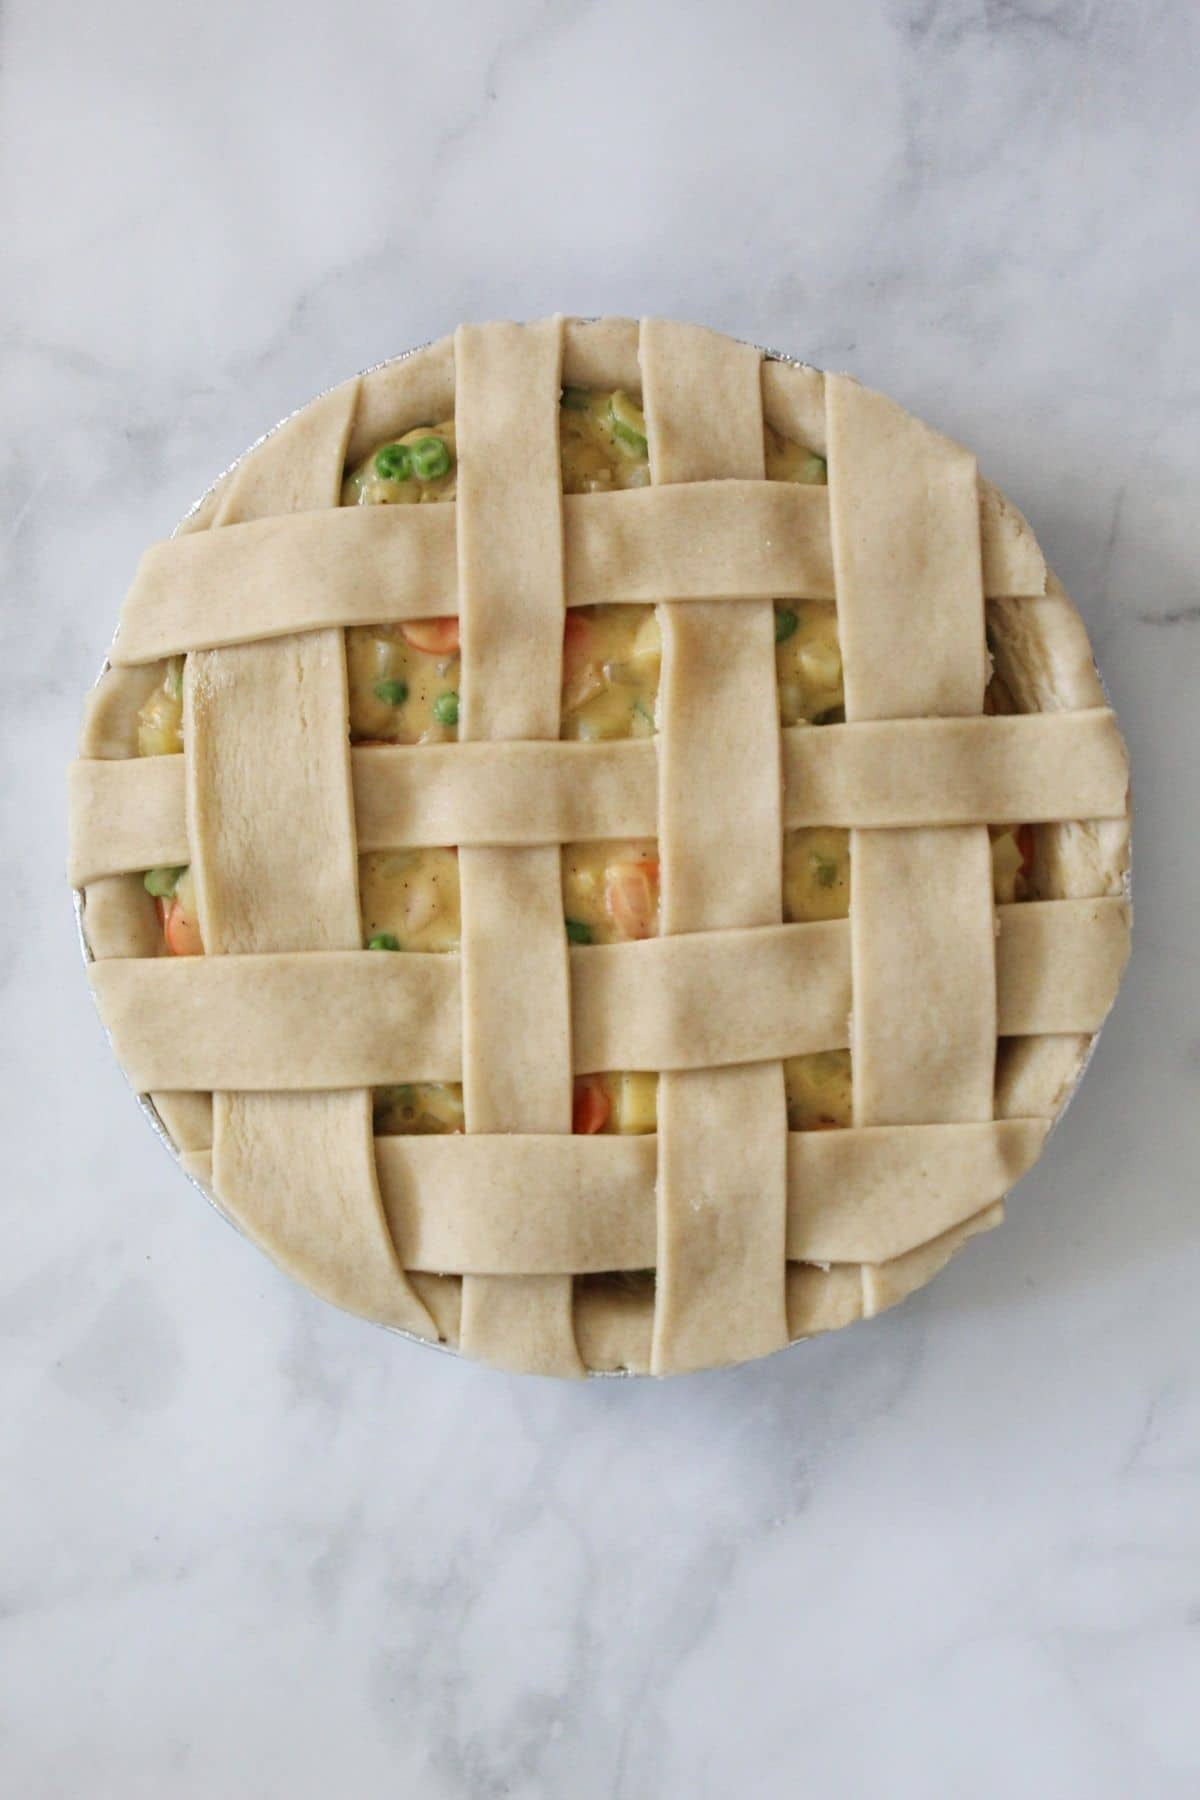 pot pie with lattice top ready to go into the oven to bake